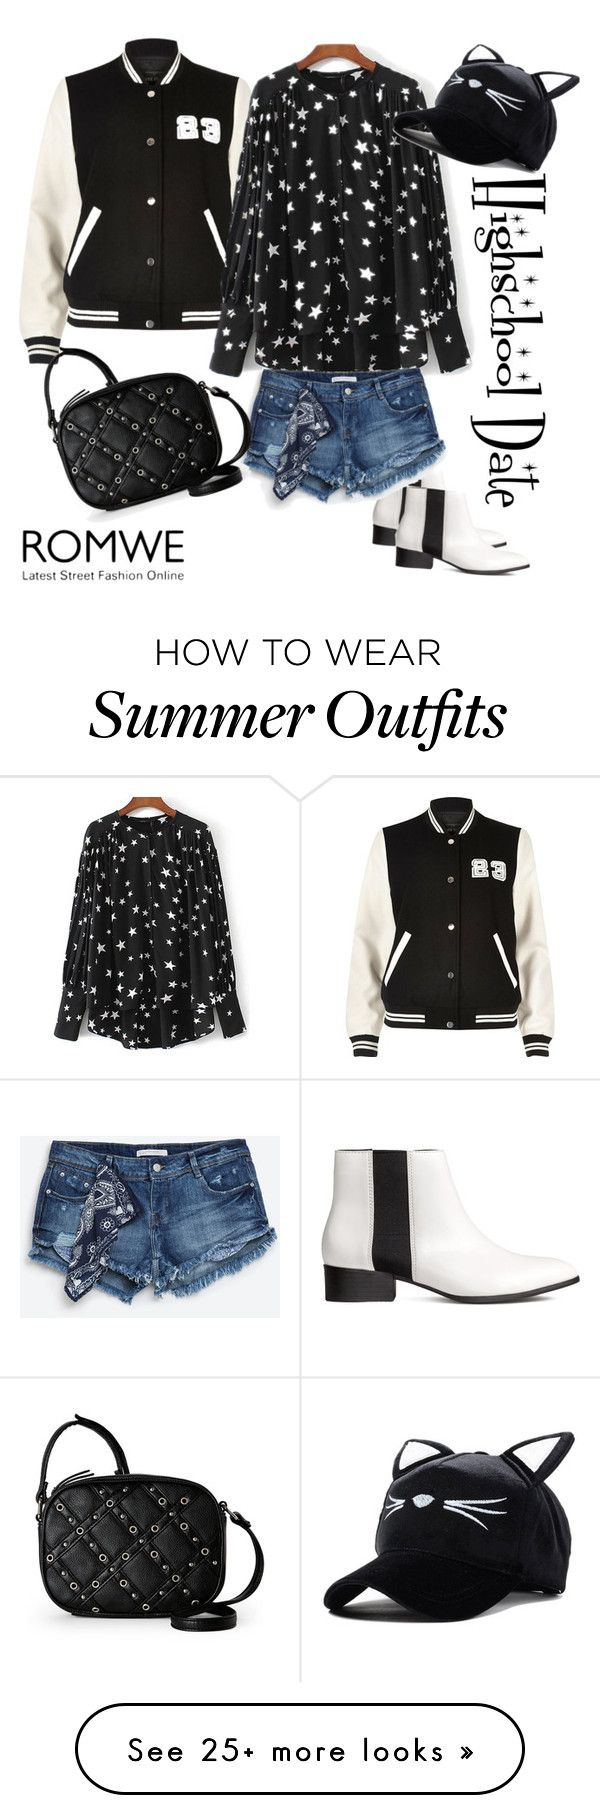 """""""Highschool Date Outfit"""" by tina-kene on Polyvore featuring H&M, R..."""